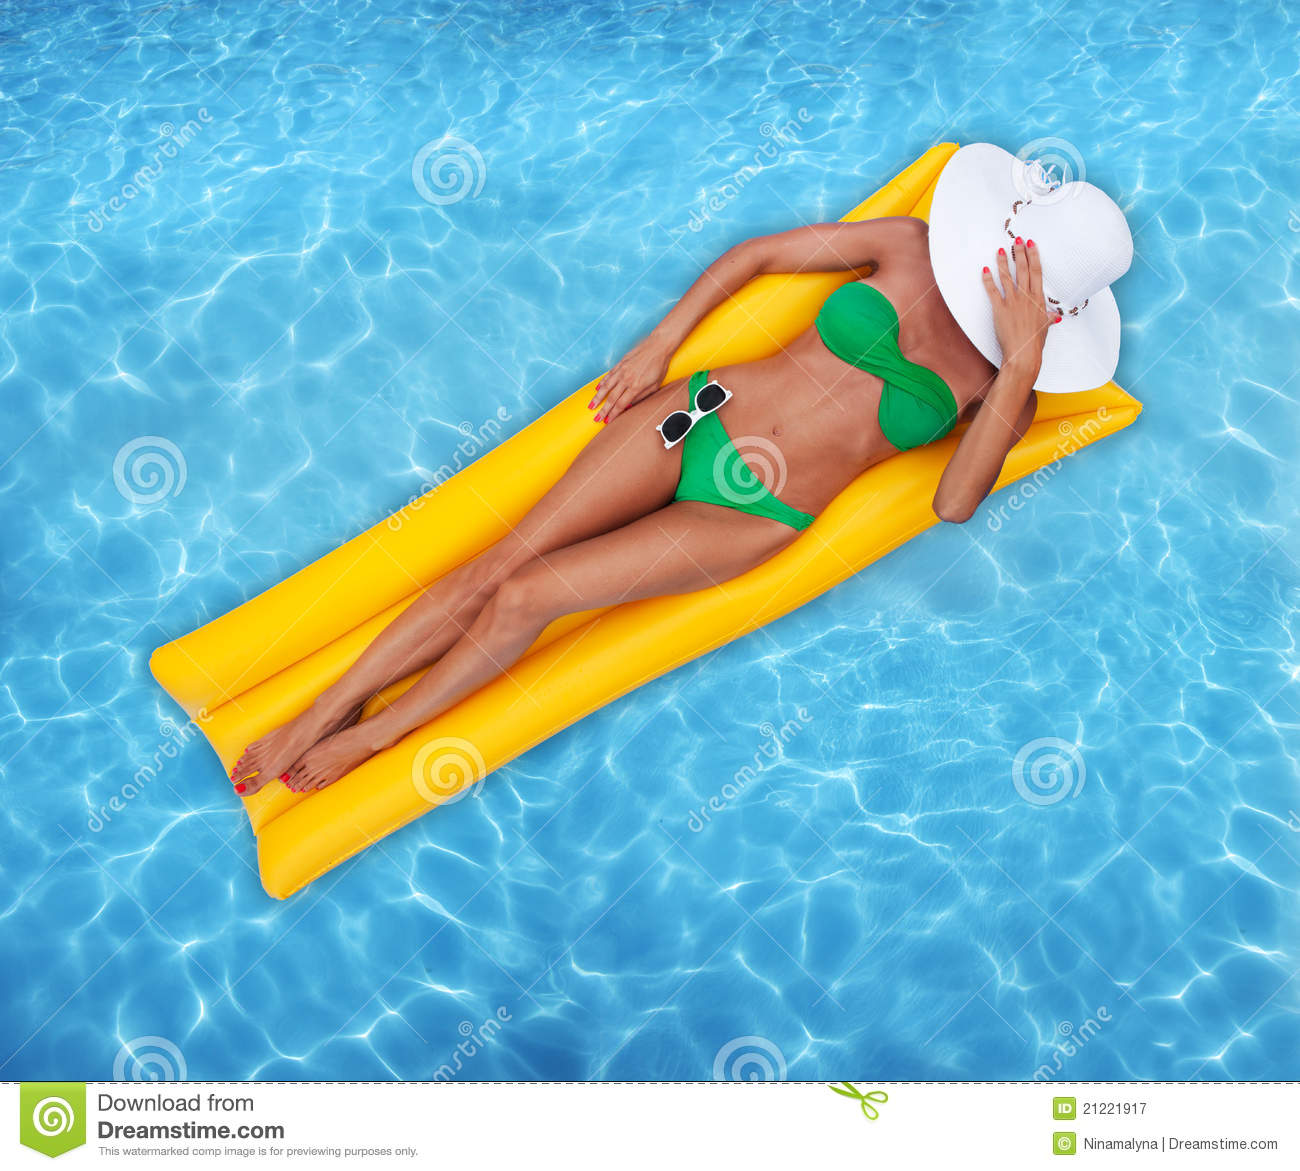 Woman With Beautiful Body In Bikini At Beach Stock Image: Relaxing In A Pool Stock Image. Image Of Swimsuit, Glasses